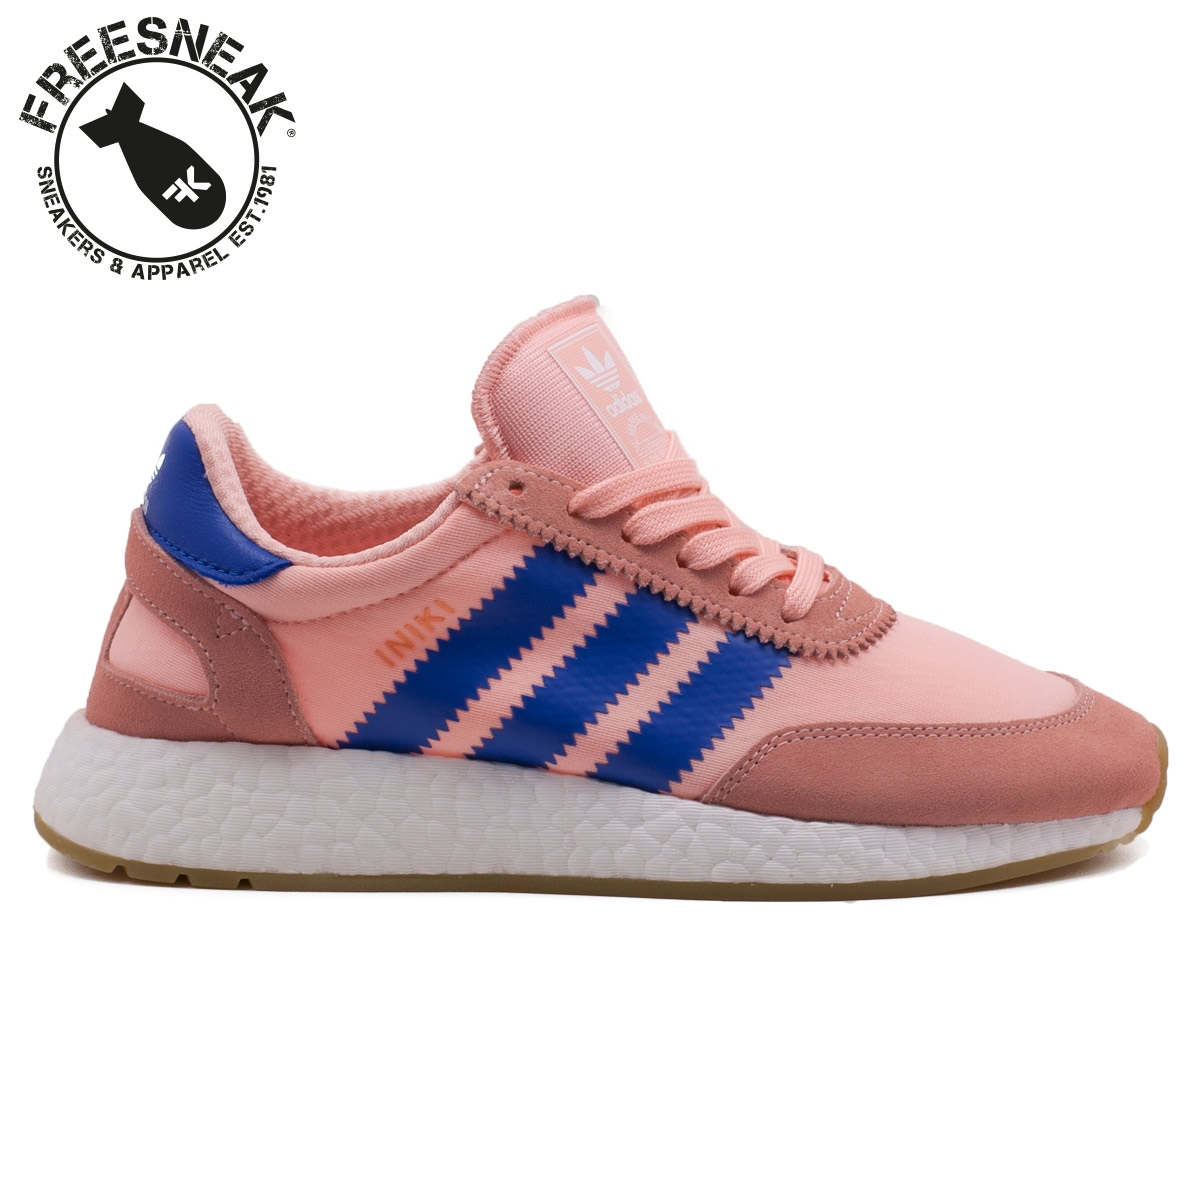 low priced 060b5 e9420 Adidas-Iniki-Runner-W-Rosa-BA9999-1.jpg